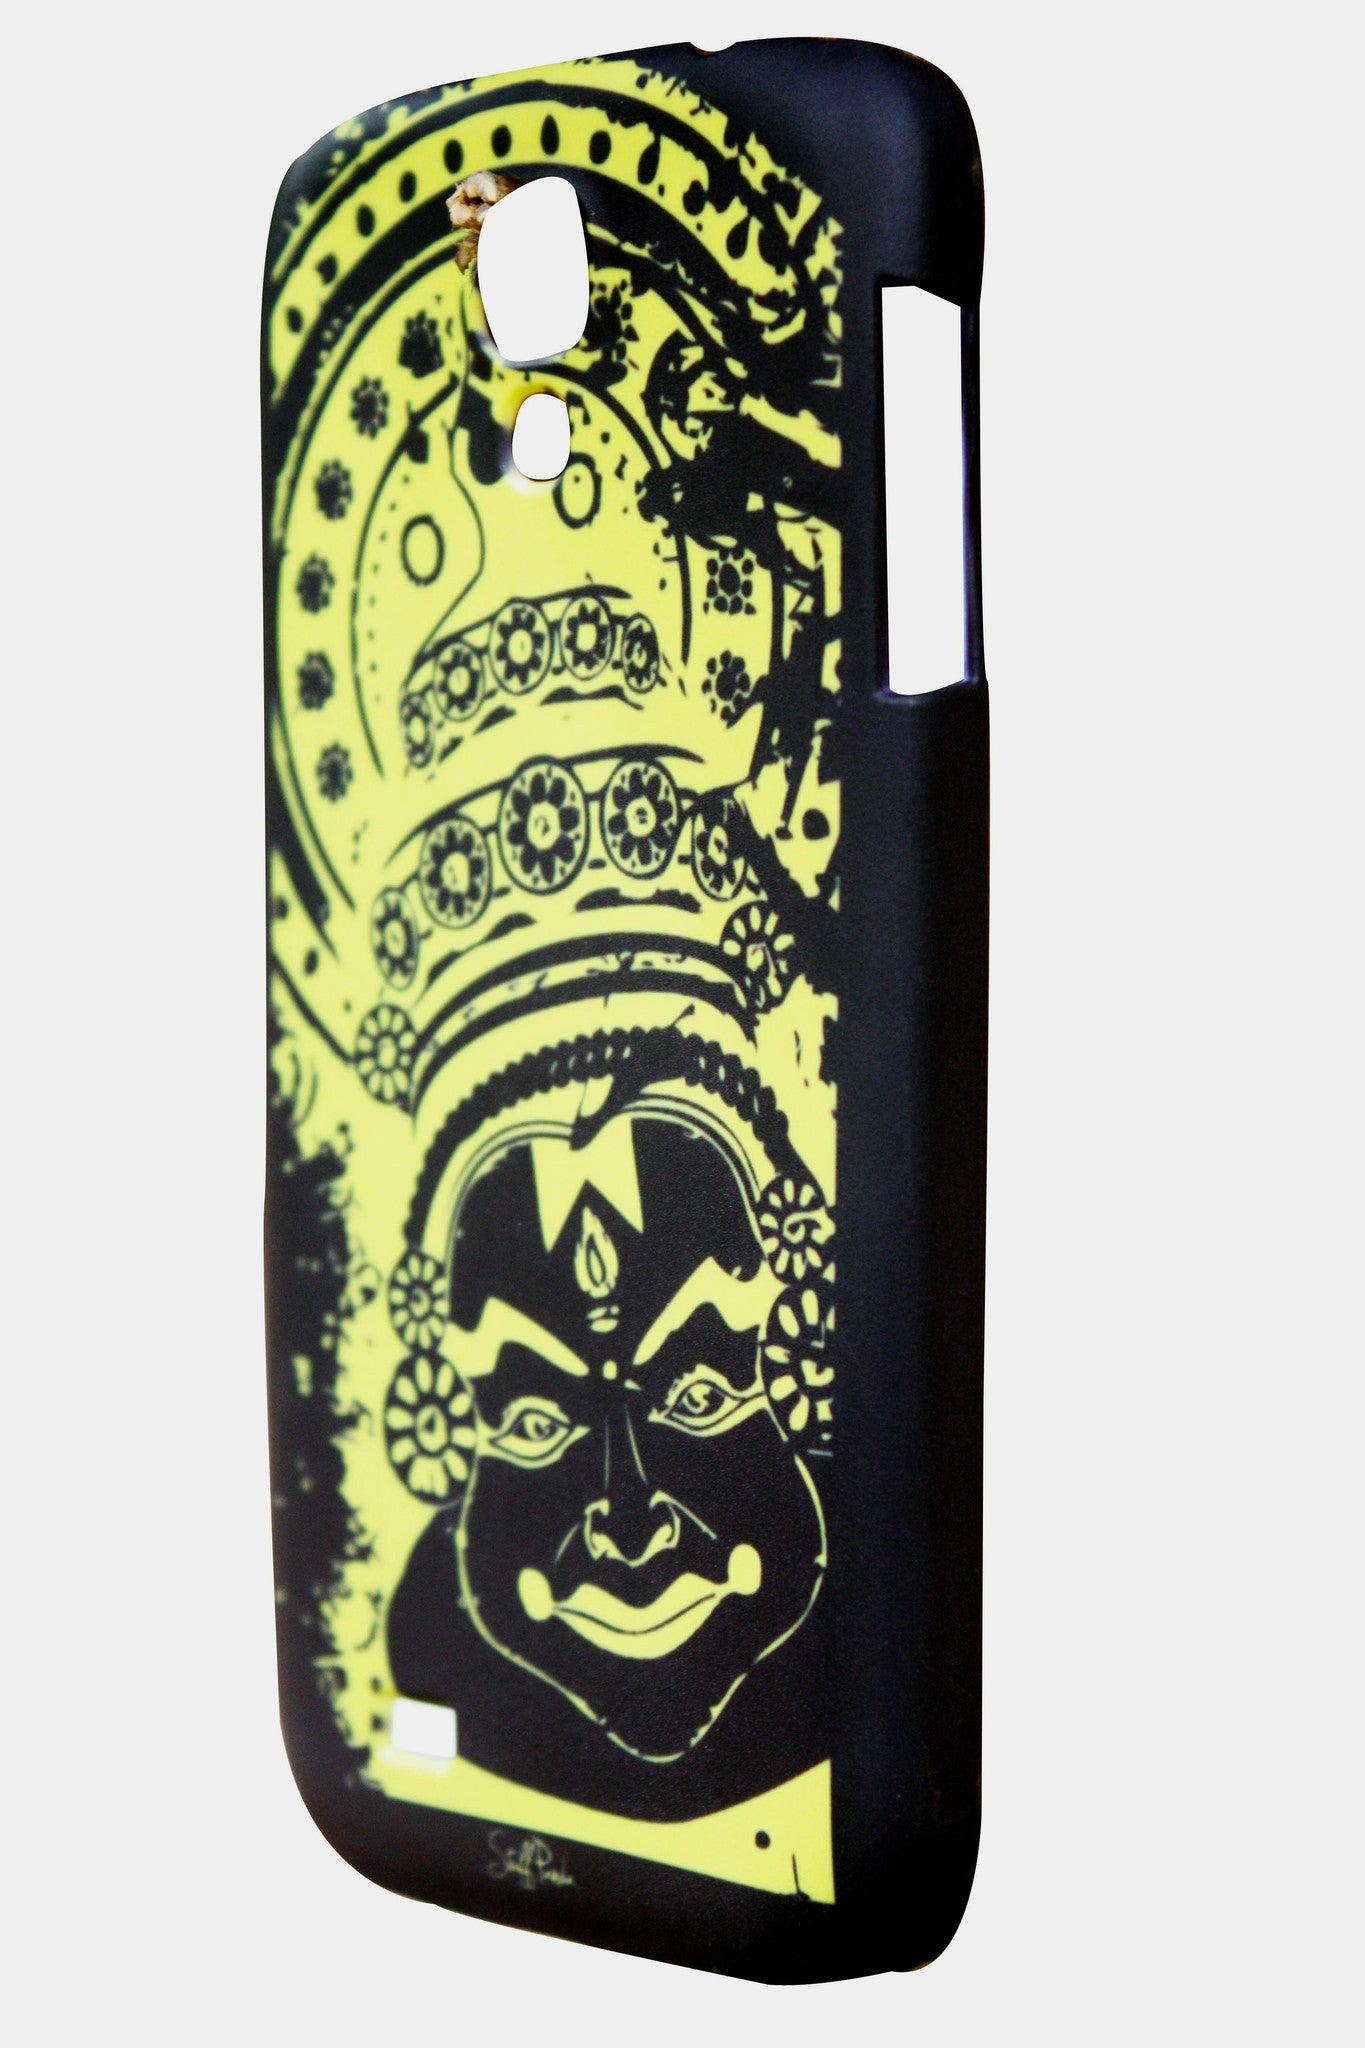 Designer dance Kathakalli Hard back cover / case for Samsung galaxy S4 - stuffpanda - 1